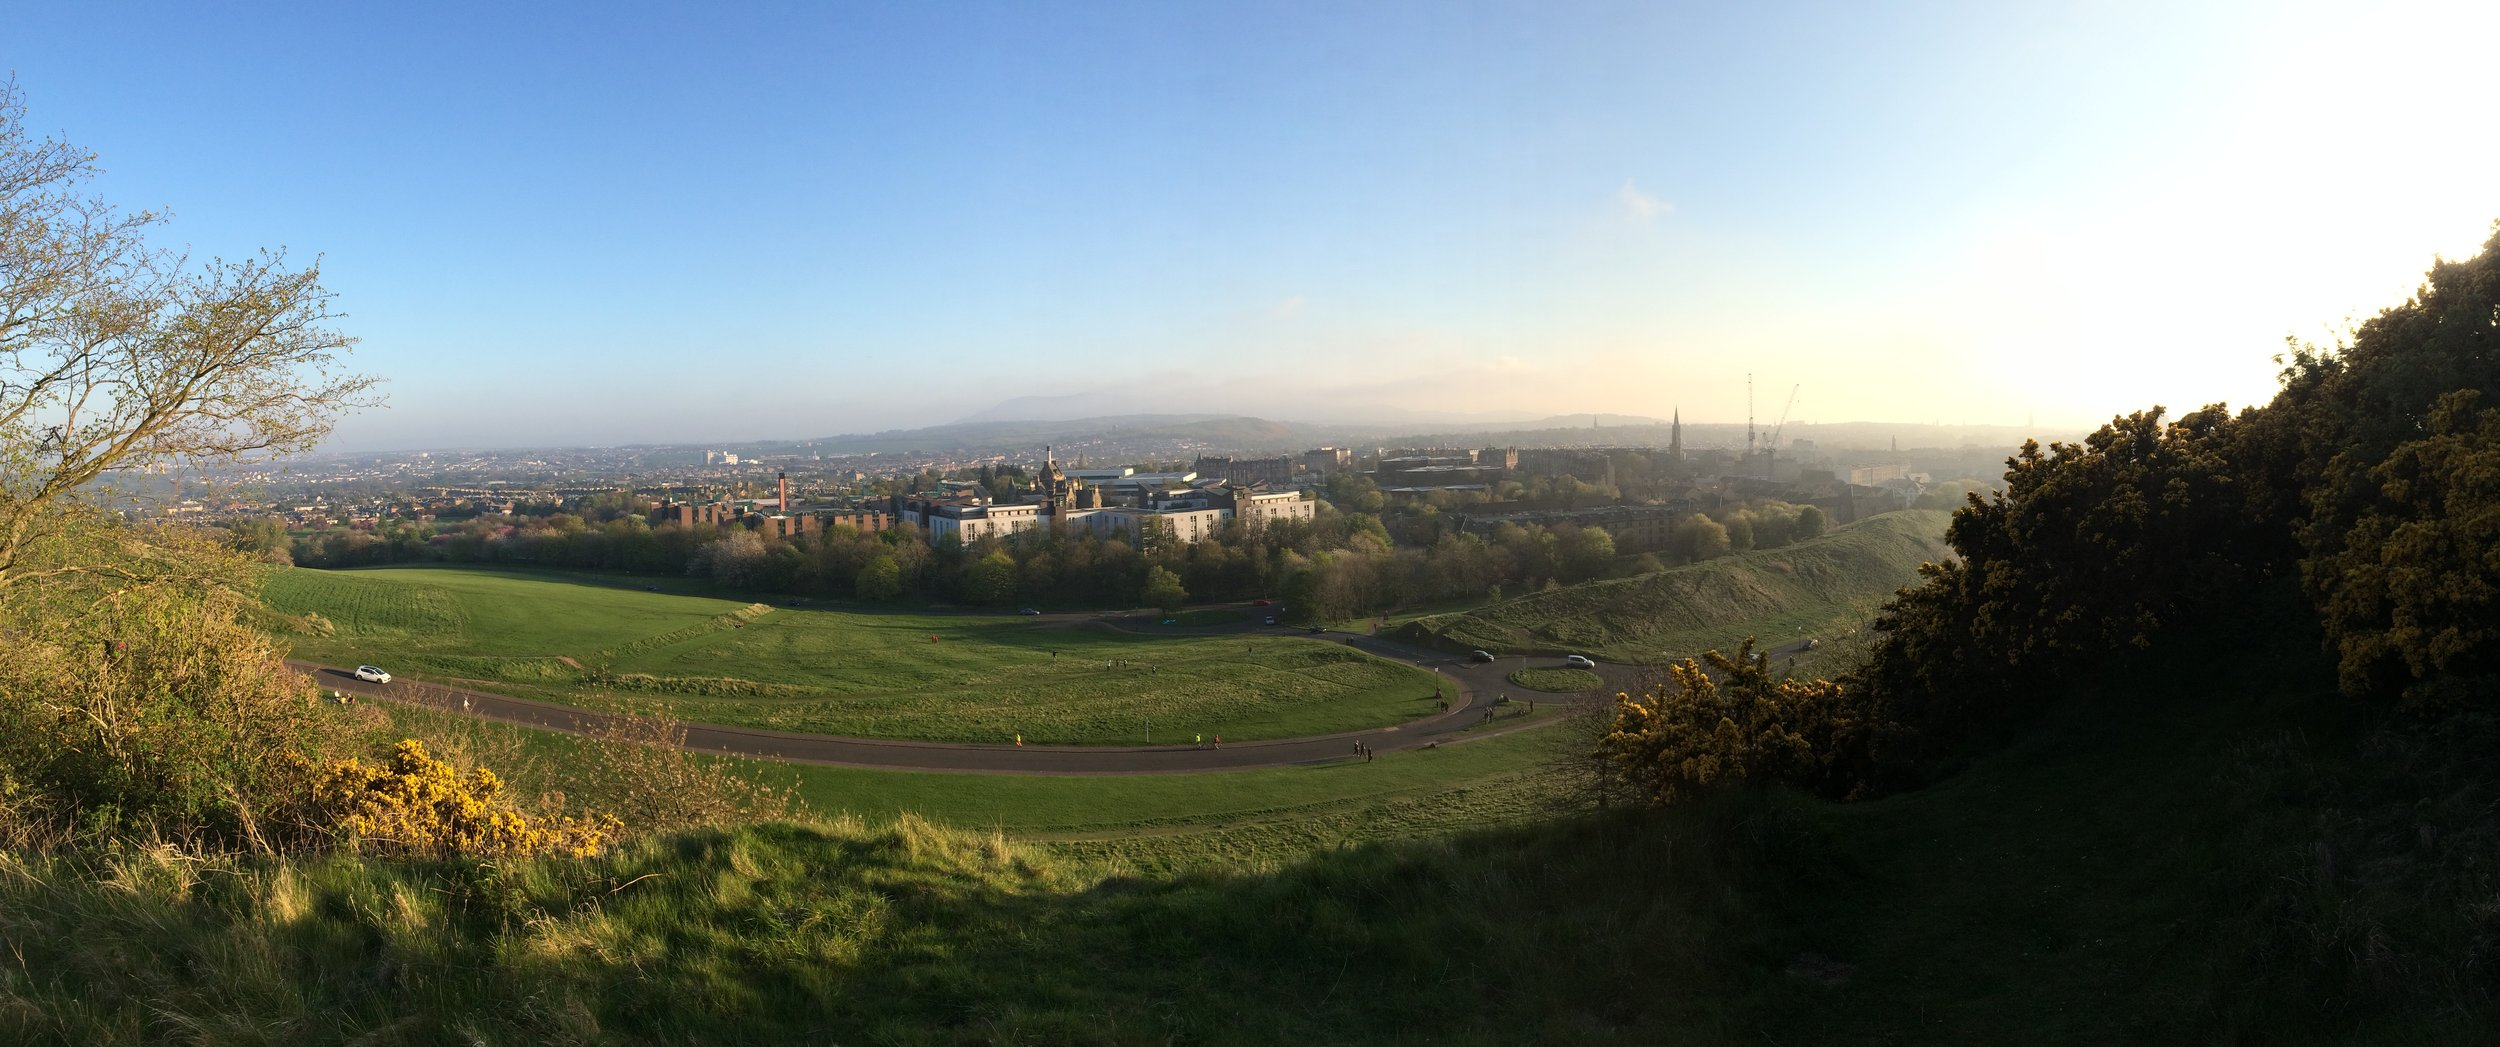 Panoramic view from Arthur's Seat - 2016